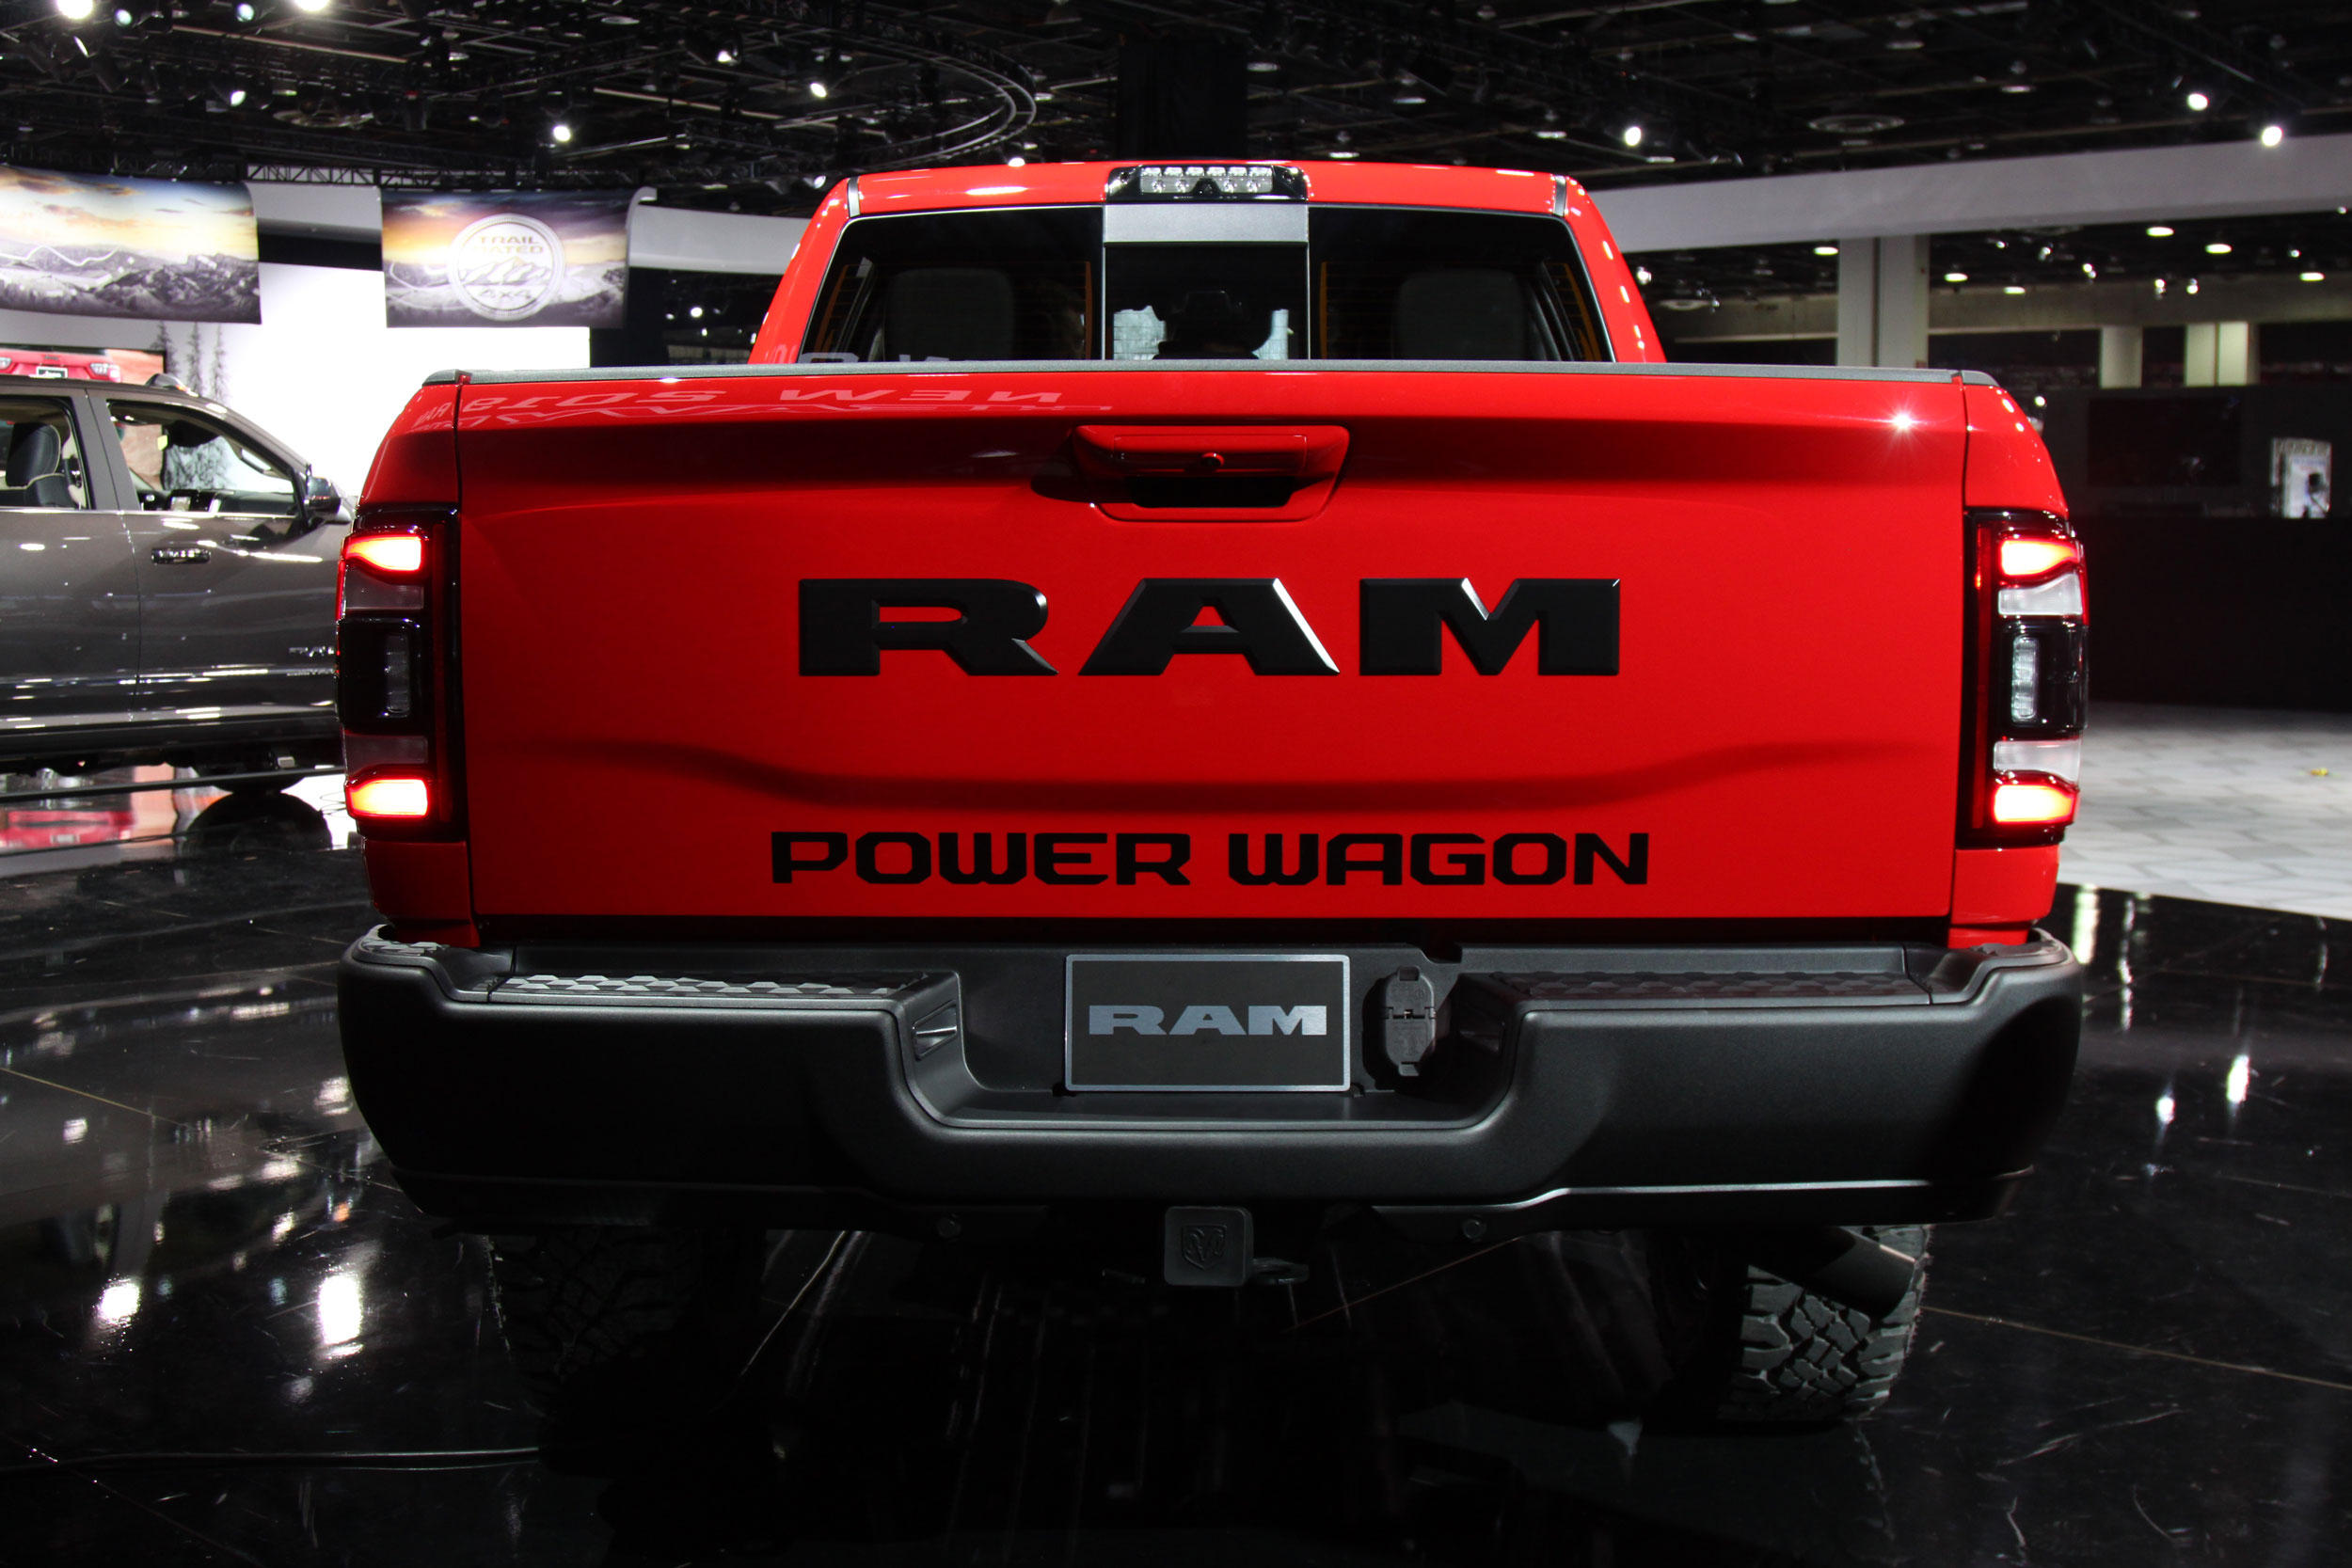 2019 RAM Power Wagon rear